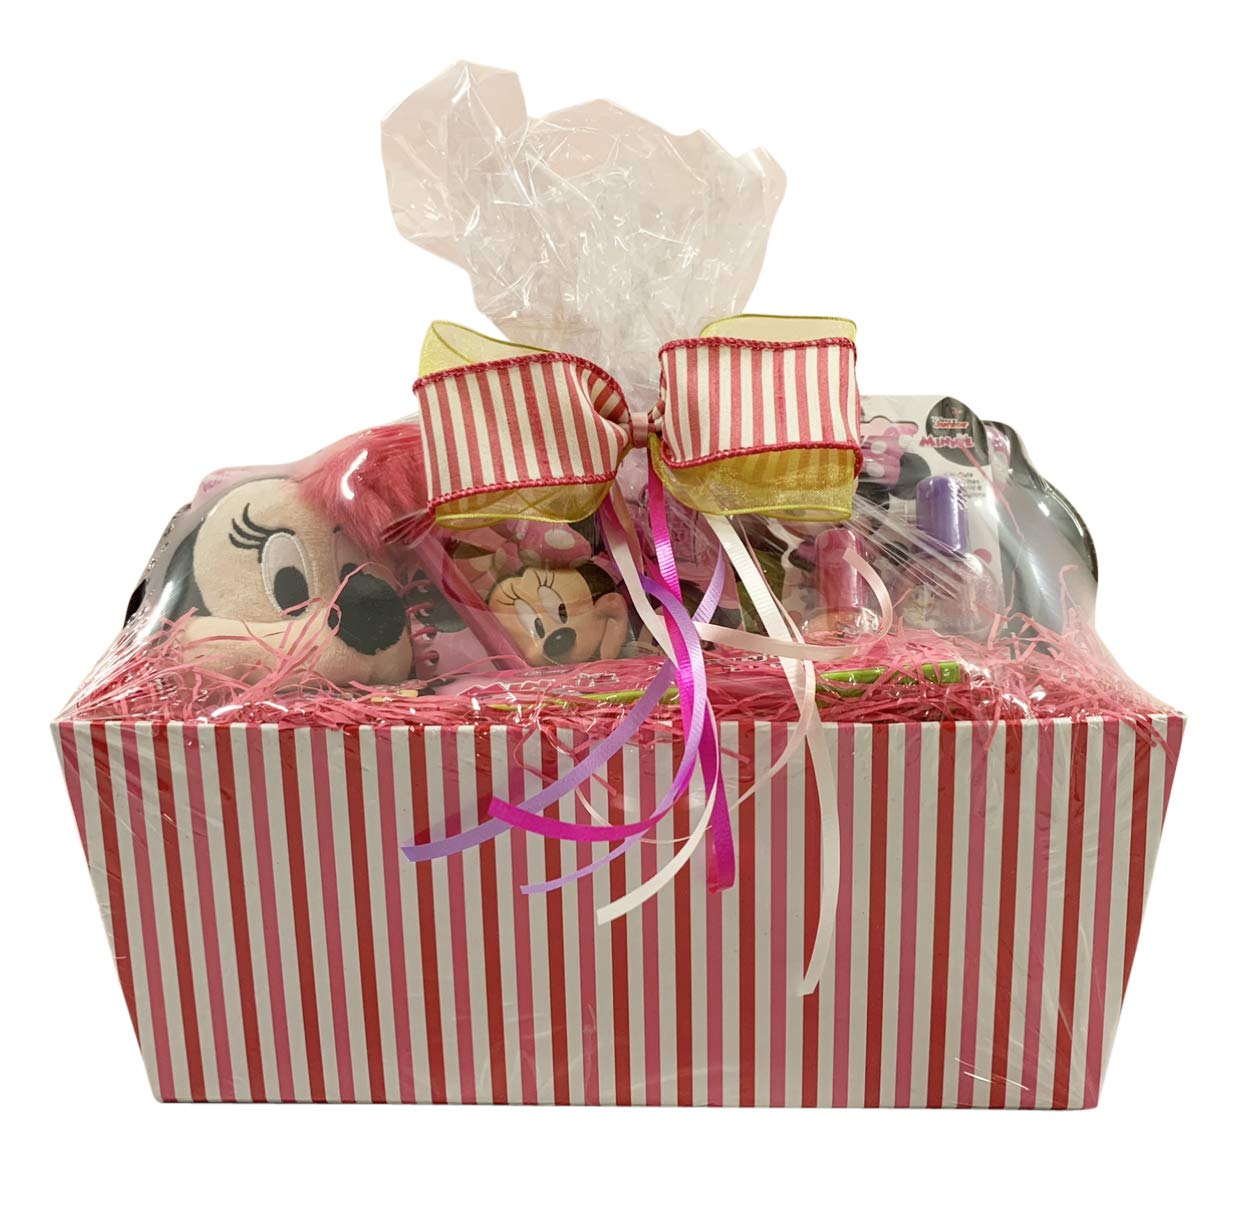 Gift Basket For Kids Minnie Mouse Themed 10 items in 1 Get Well, Birthday Basket with Novelties, Jewelry, Watch, Hair Accessories, Fun & Games by SKash26ani (Image #2)